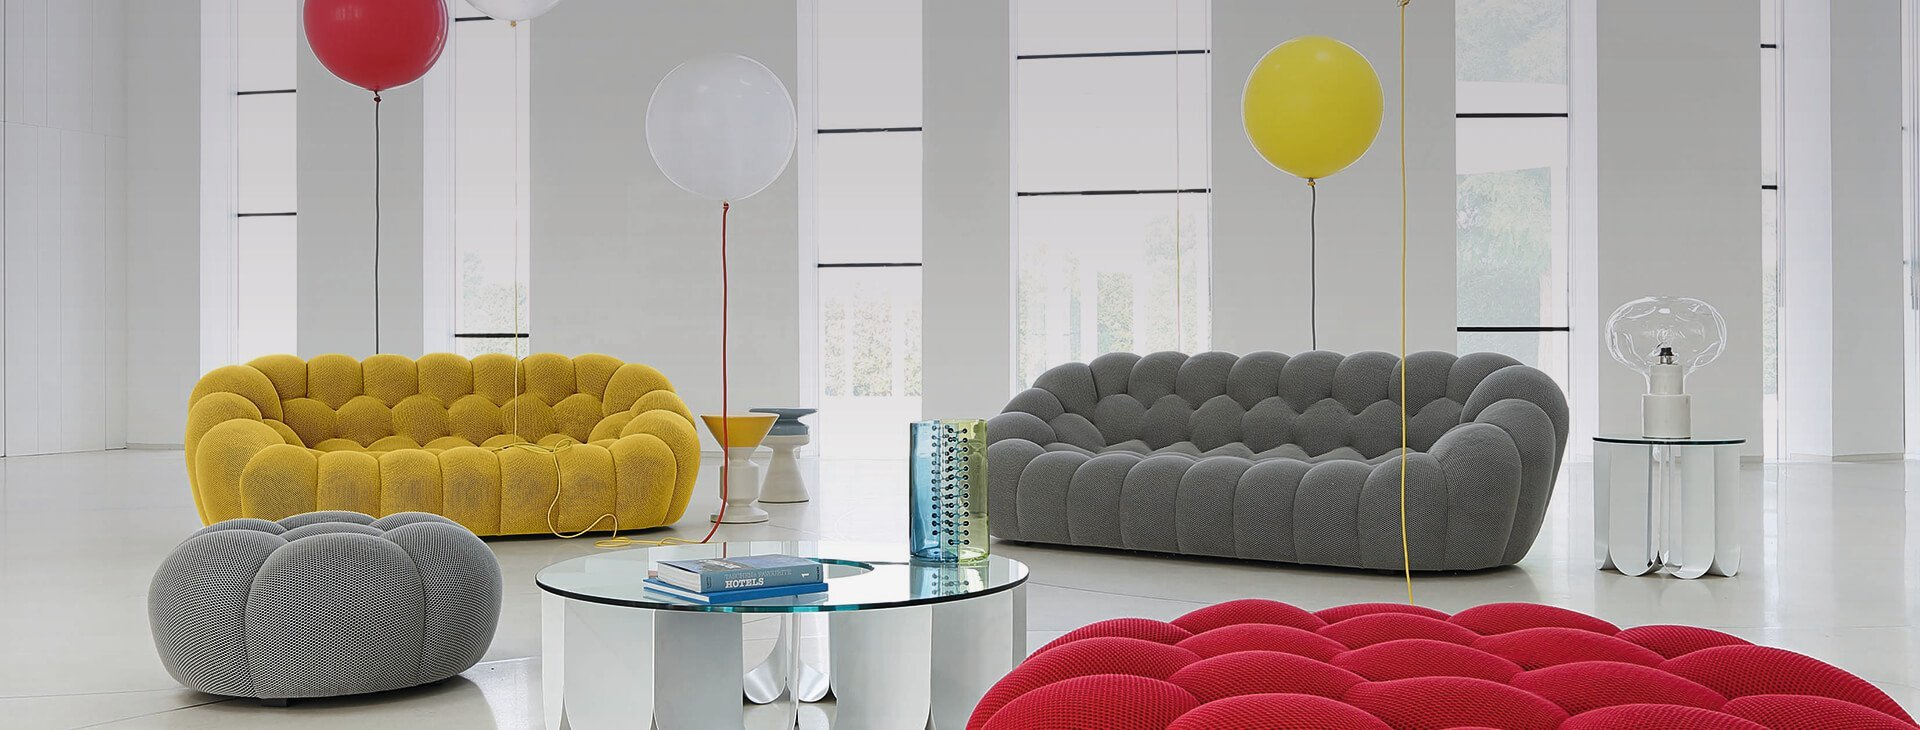 stilwerk_roche_bobois_bubble_stage